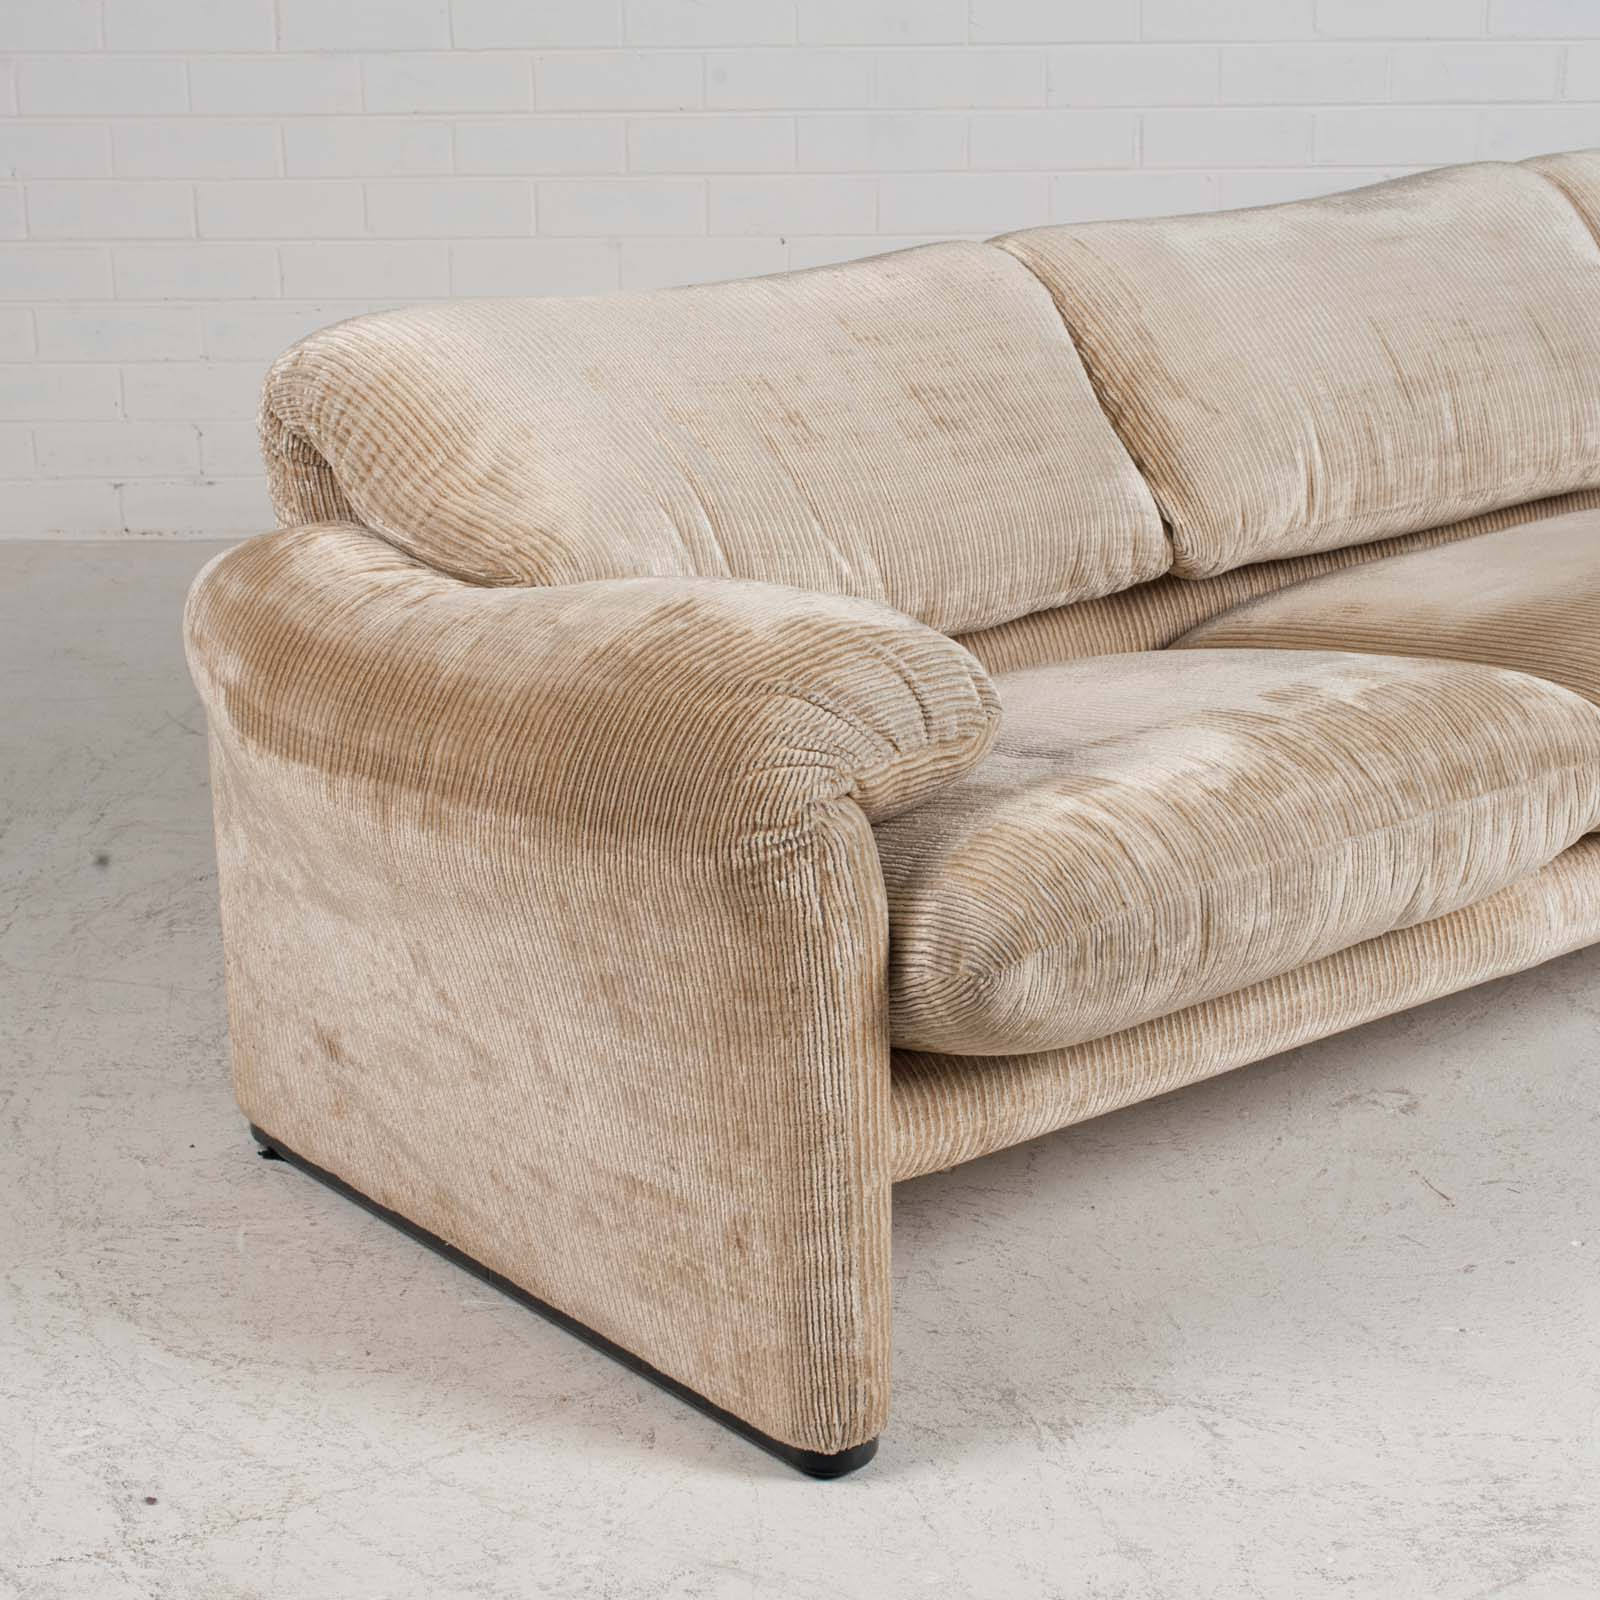 Maralunga 3 Seat Sofa By Vico Magistretti For Cassina In Original Upholstery 1970s Italy 09